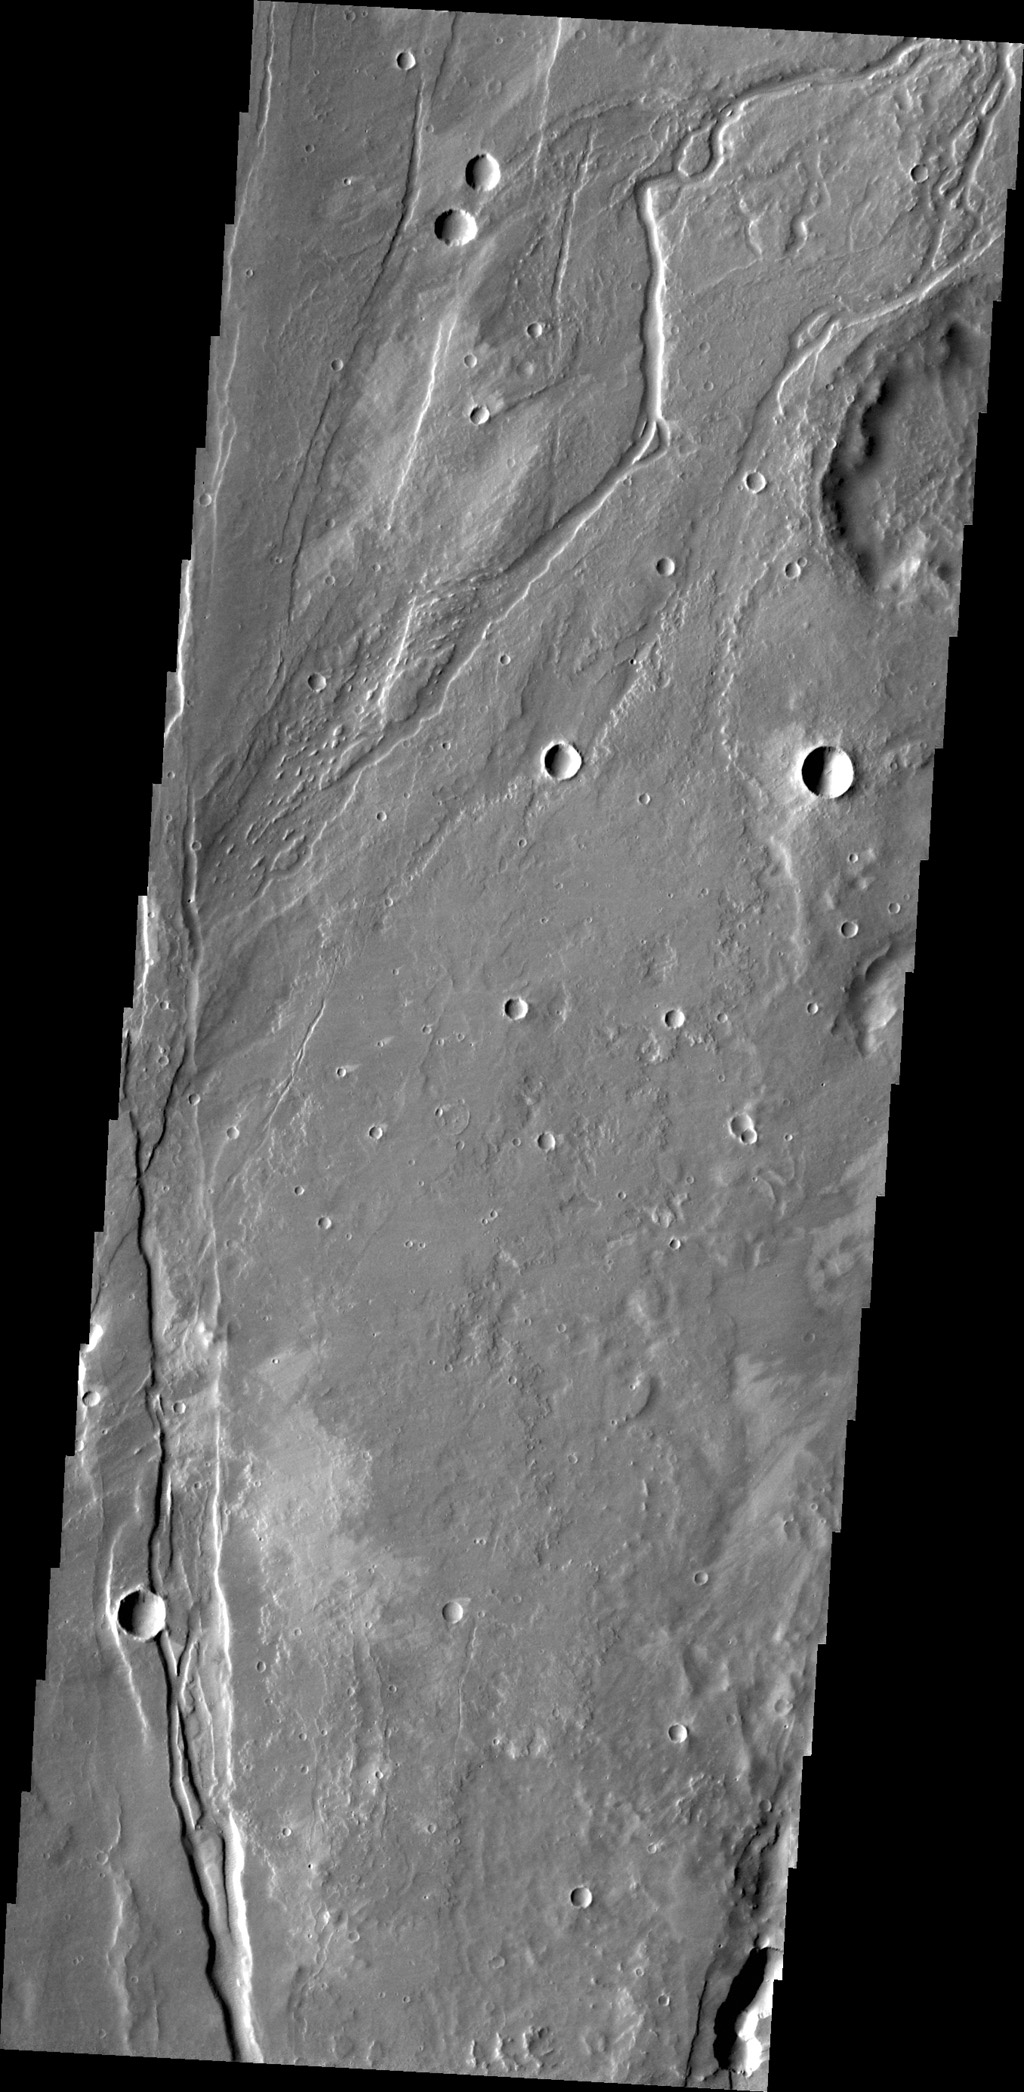 The small channel in this image captured by is located in volcanic flows in the northern part of Tractus Fossae.